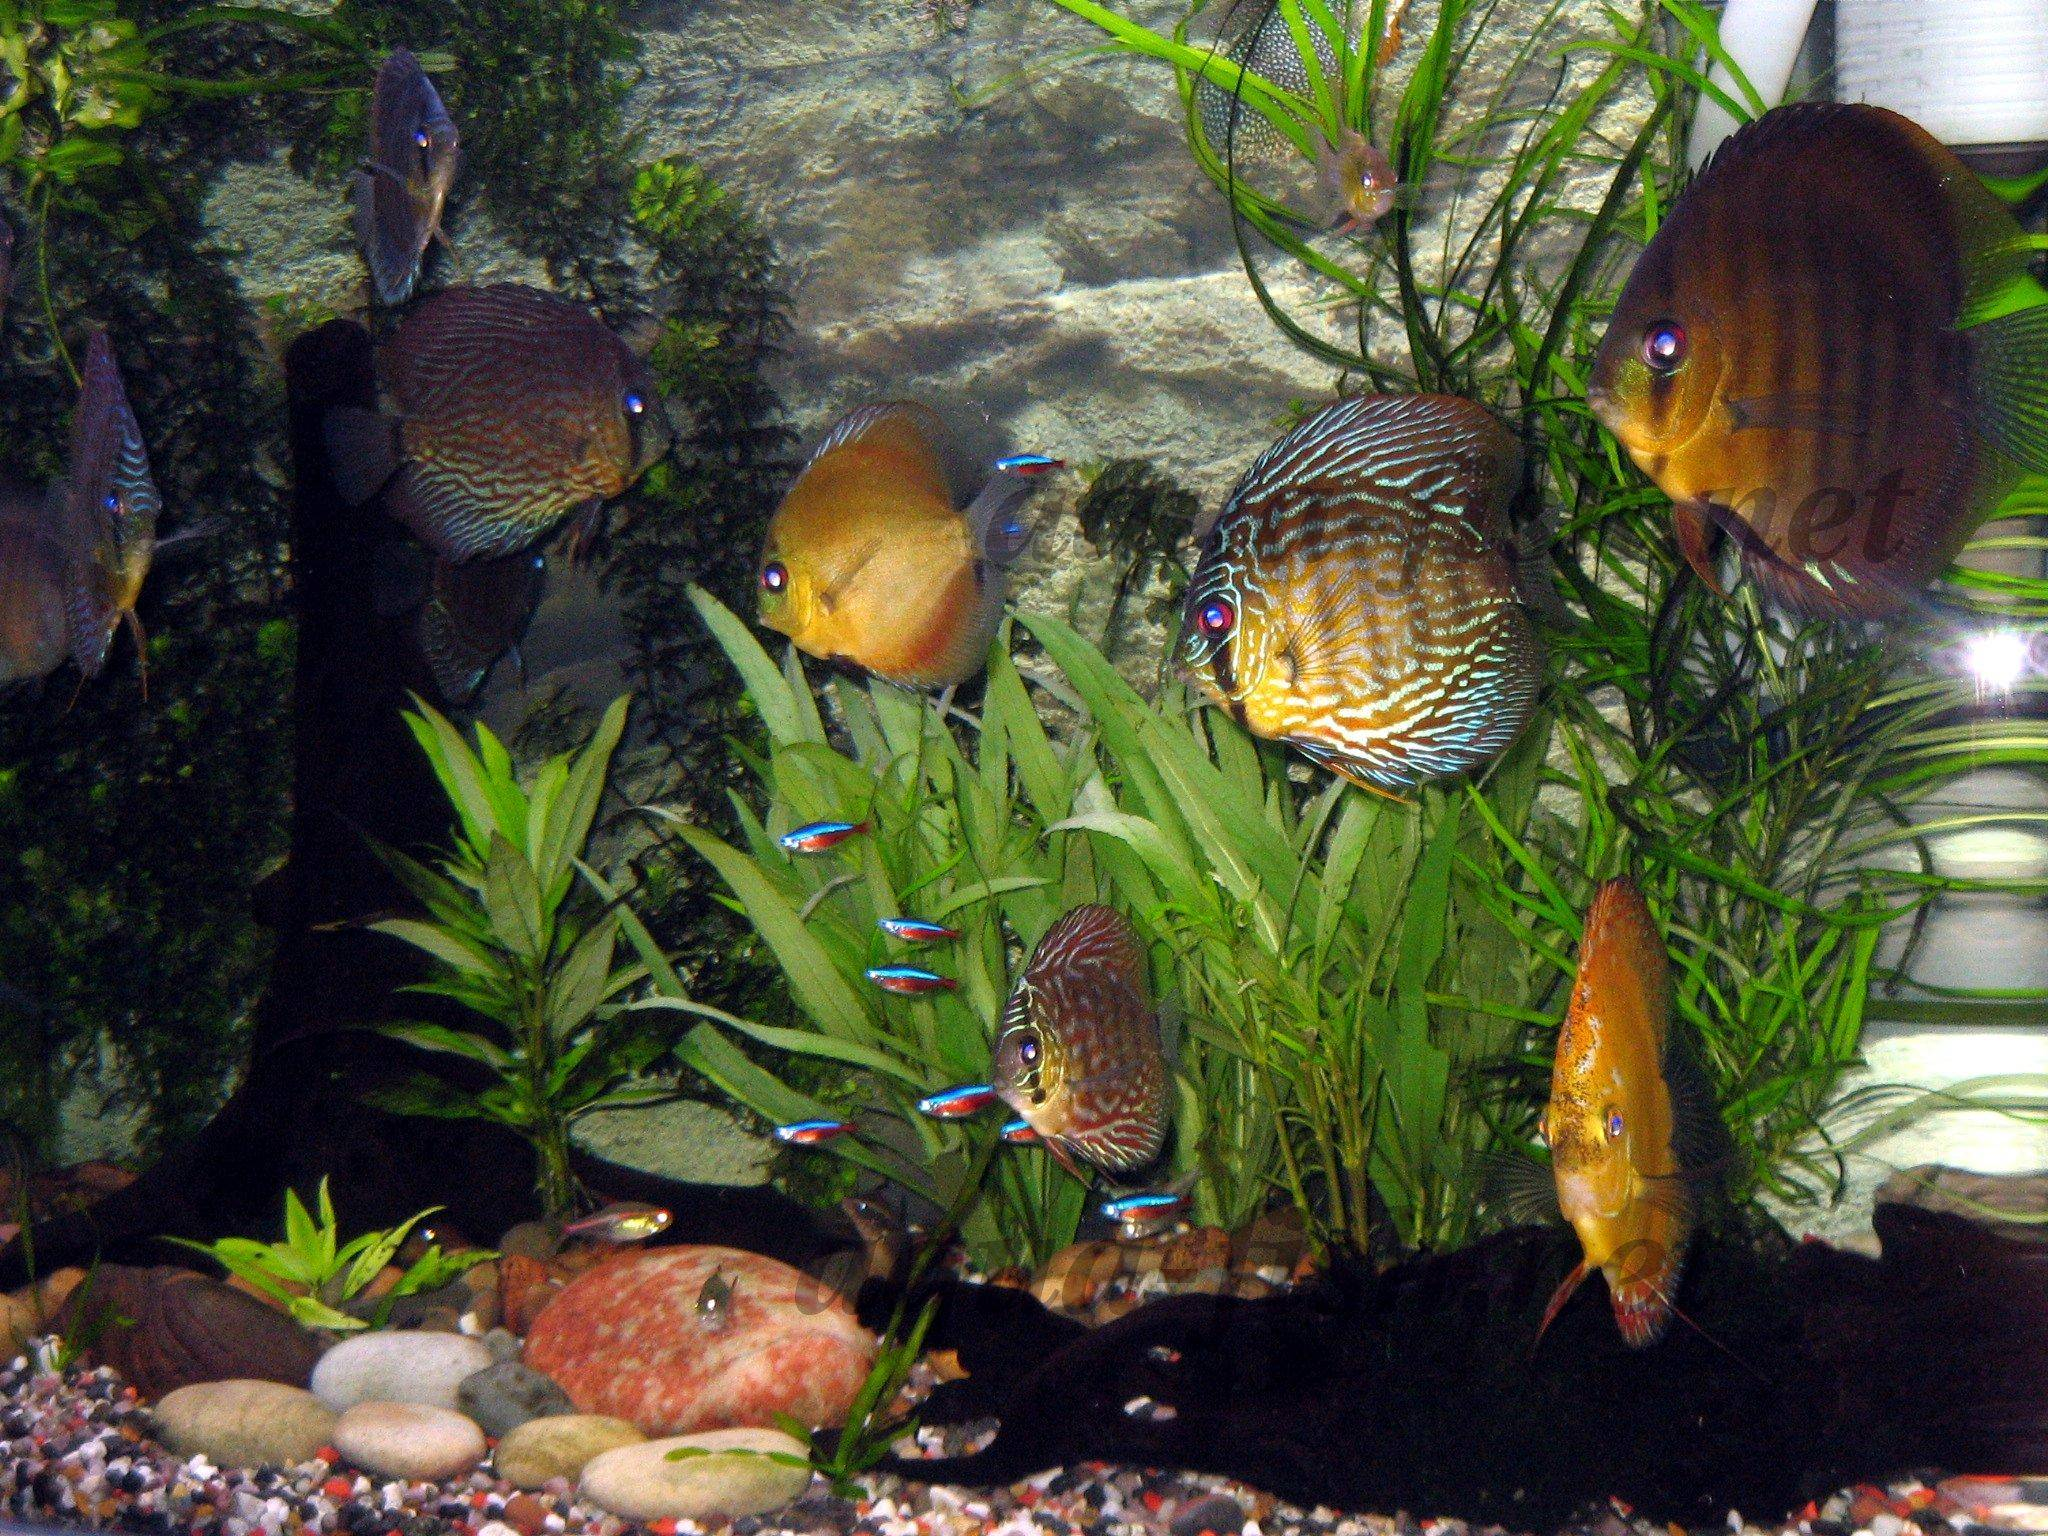 Discus Aquarium Fish - Care, Breeding, Forum & Everything for happy